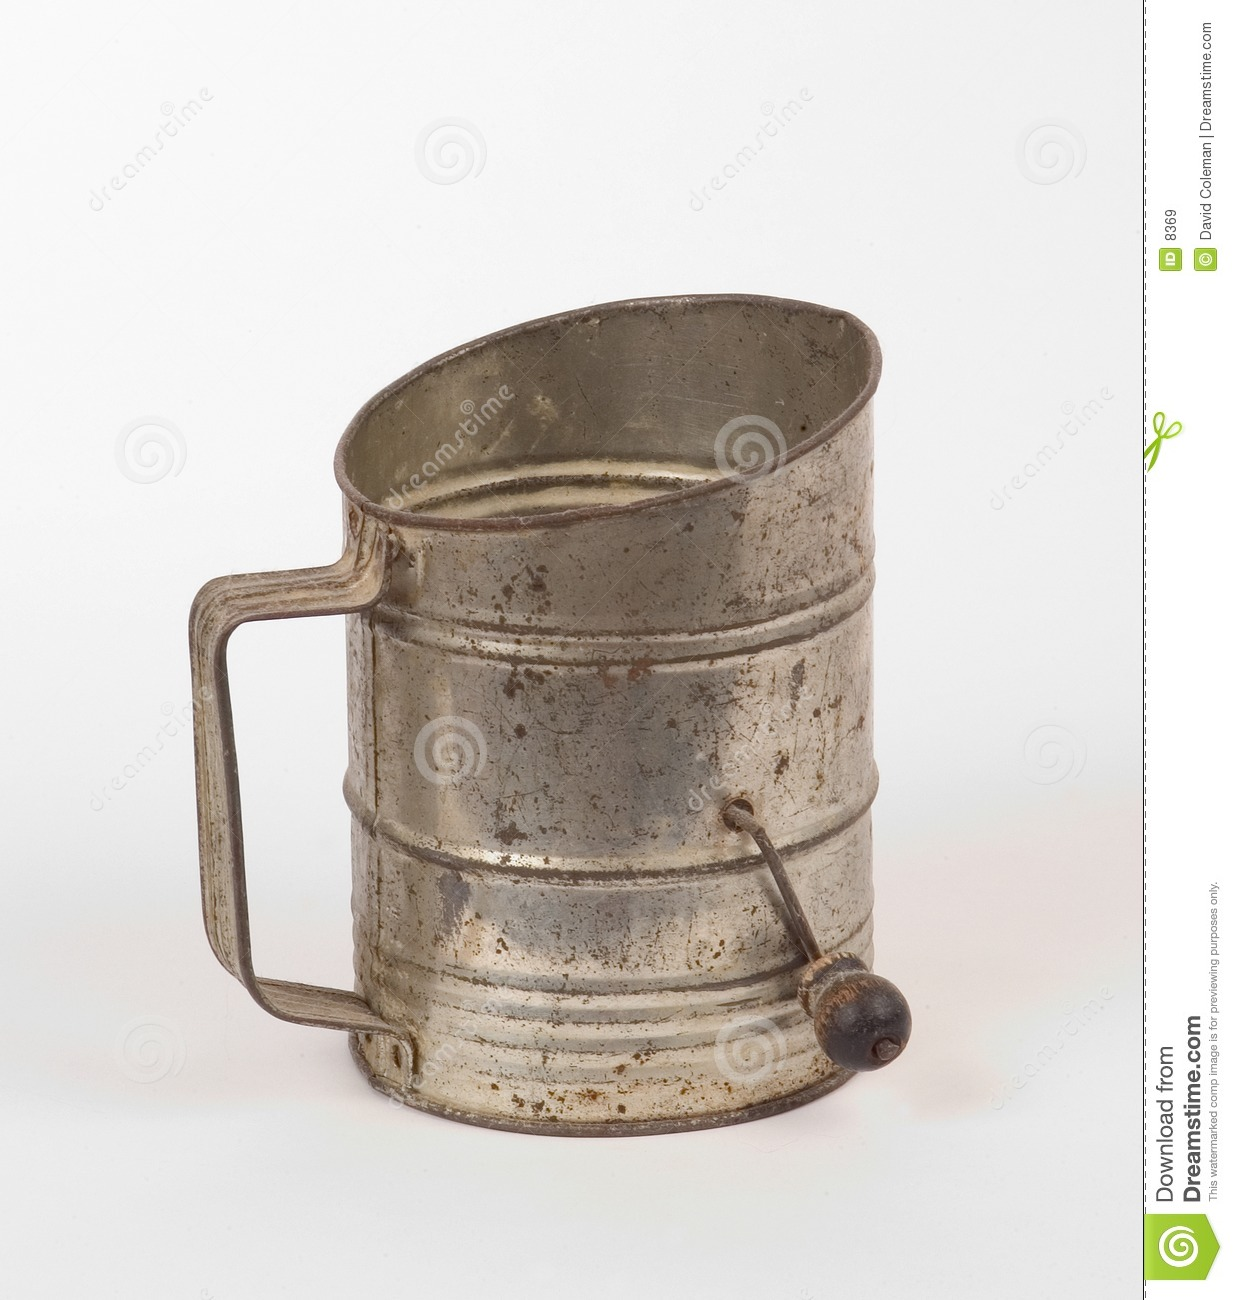 Flour Sifter Royalty Free Stock Images.